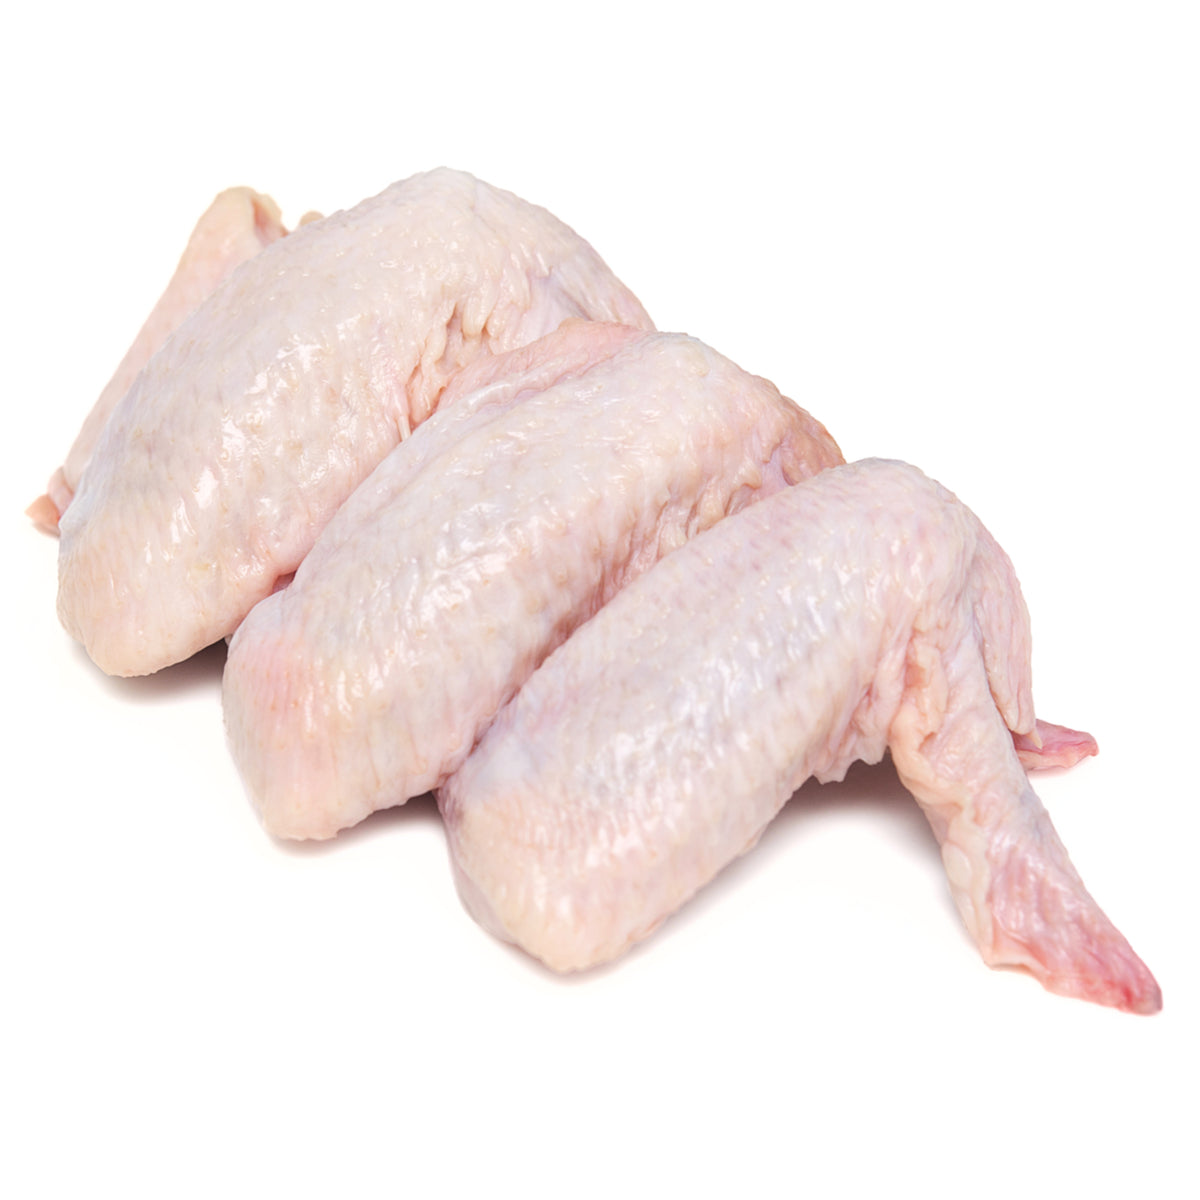 CHICKEN WINGS (1kg)